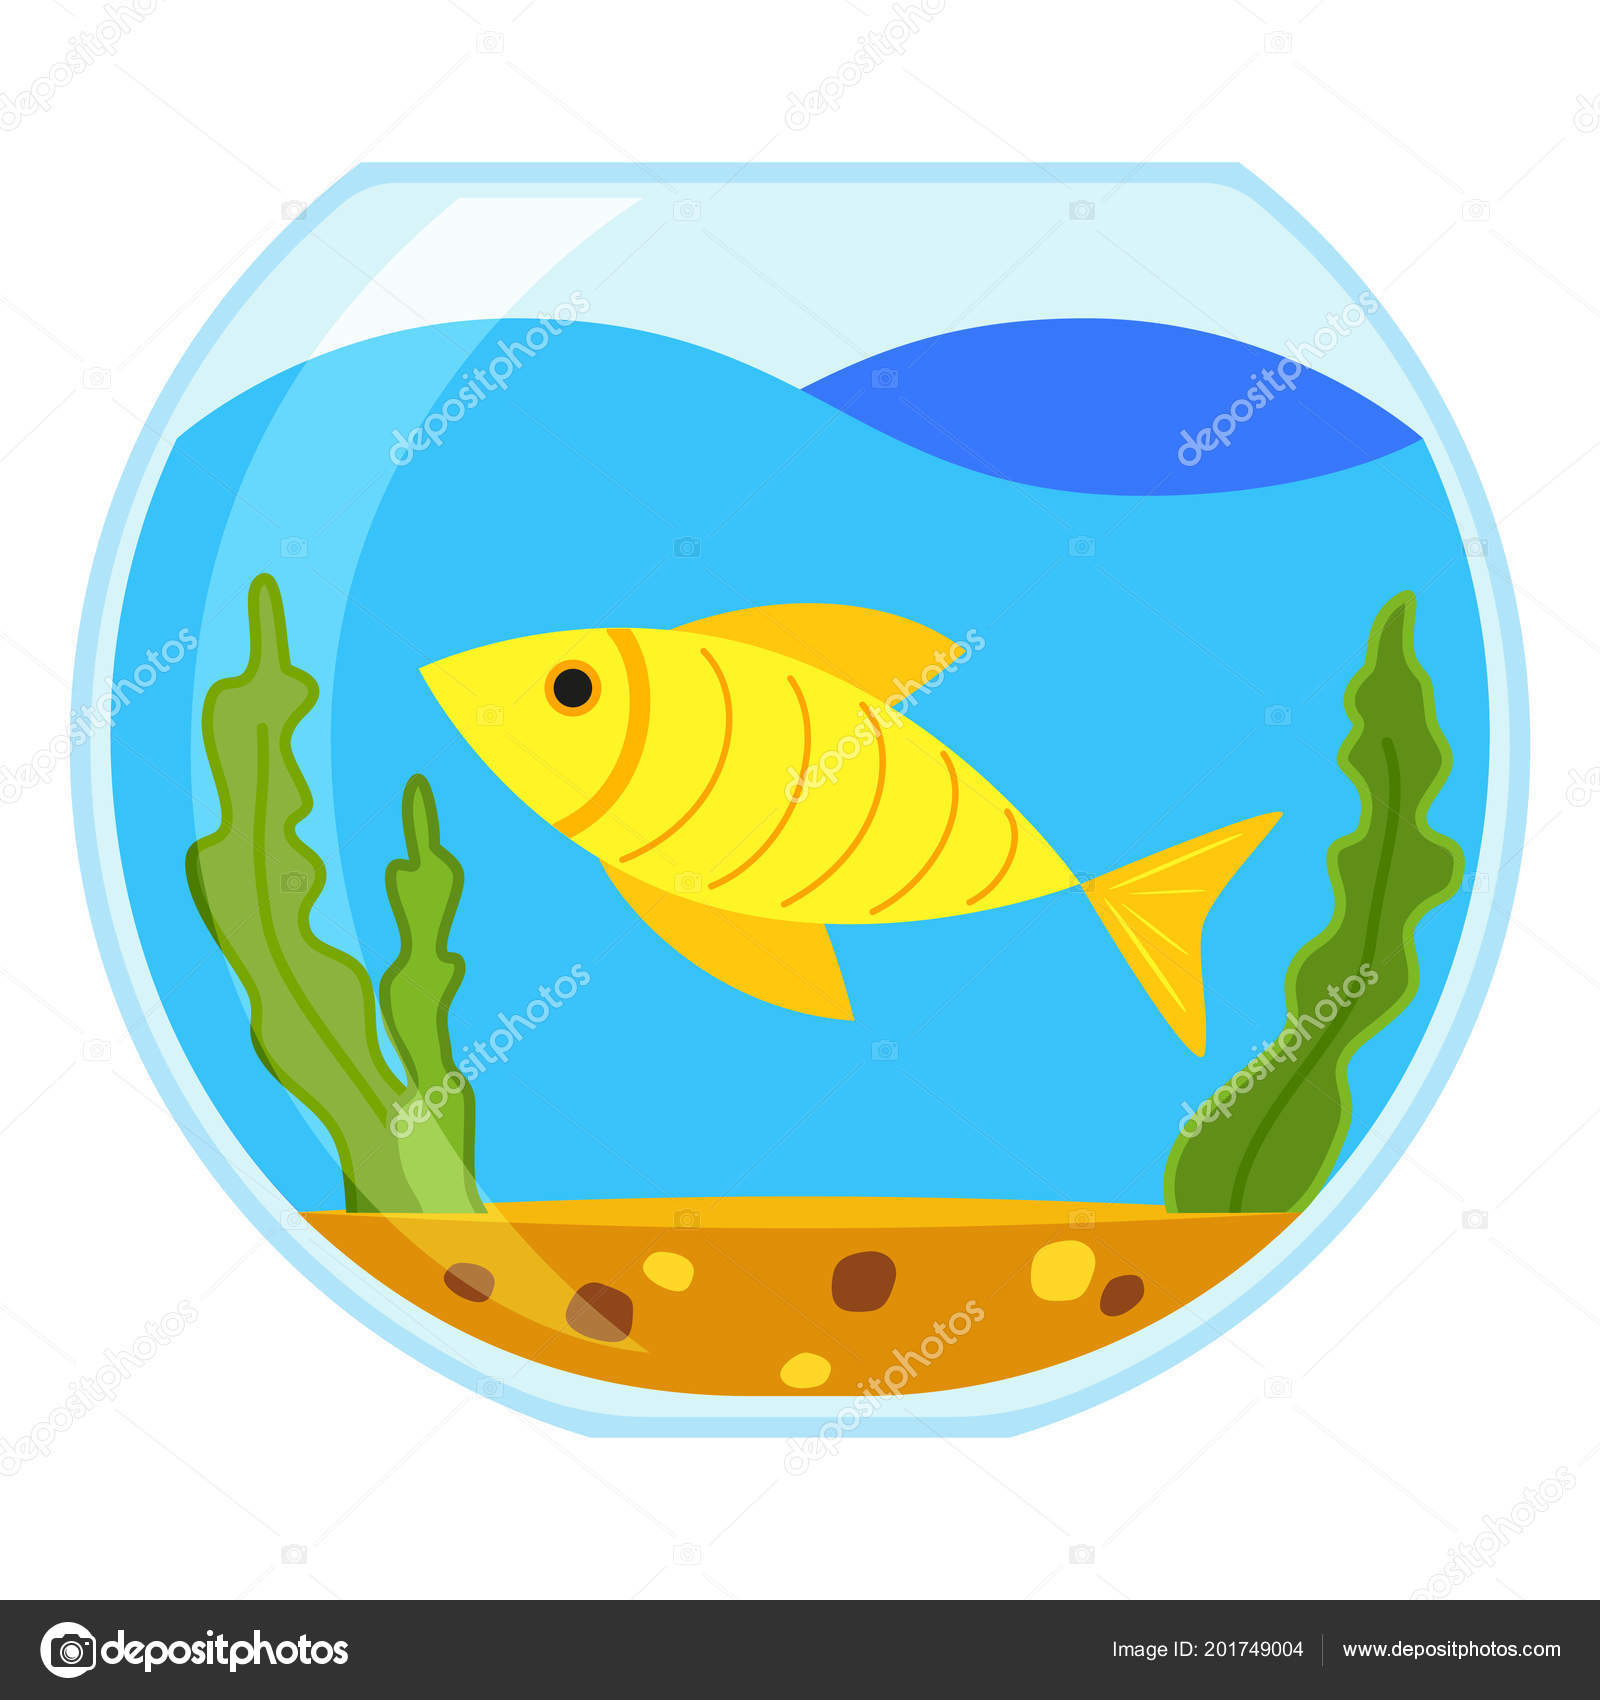 graphic relating to Aquarium Backgrounds Printable titled Heritage: printable backgrounds for fish tanks Colourful